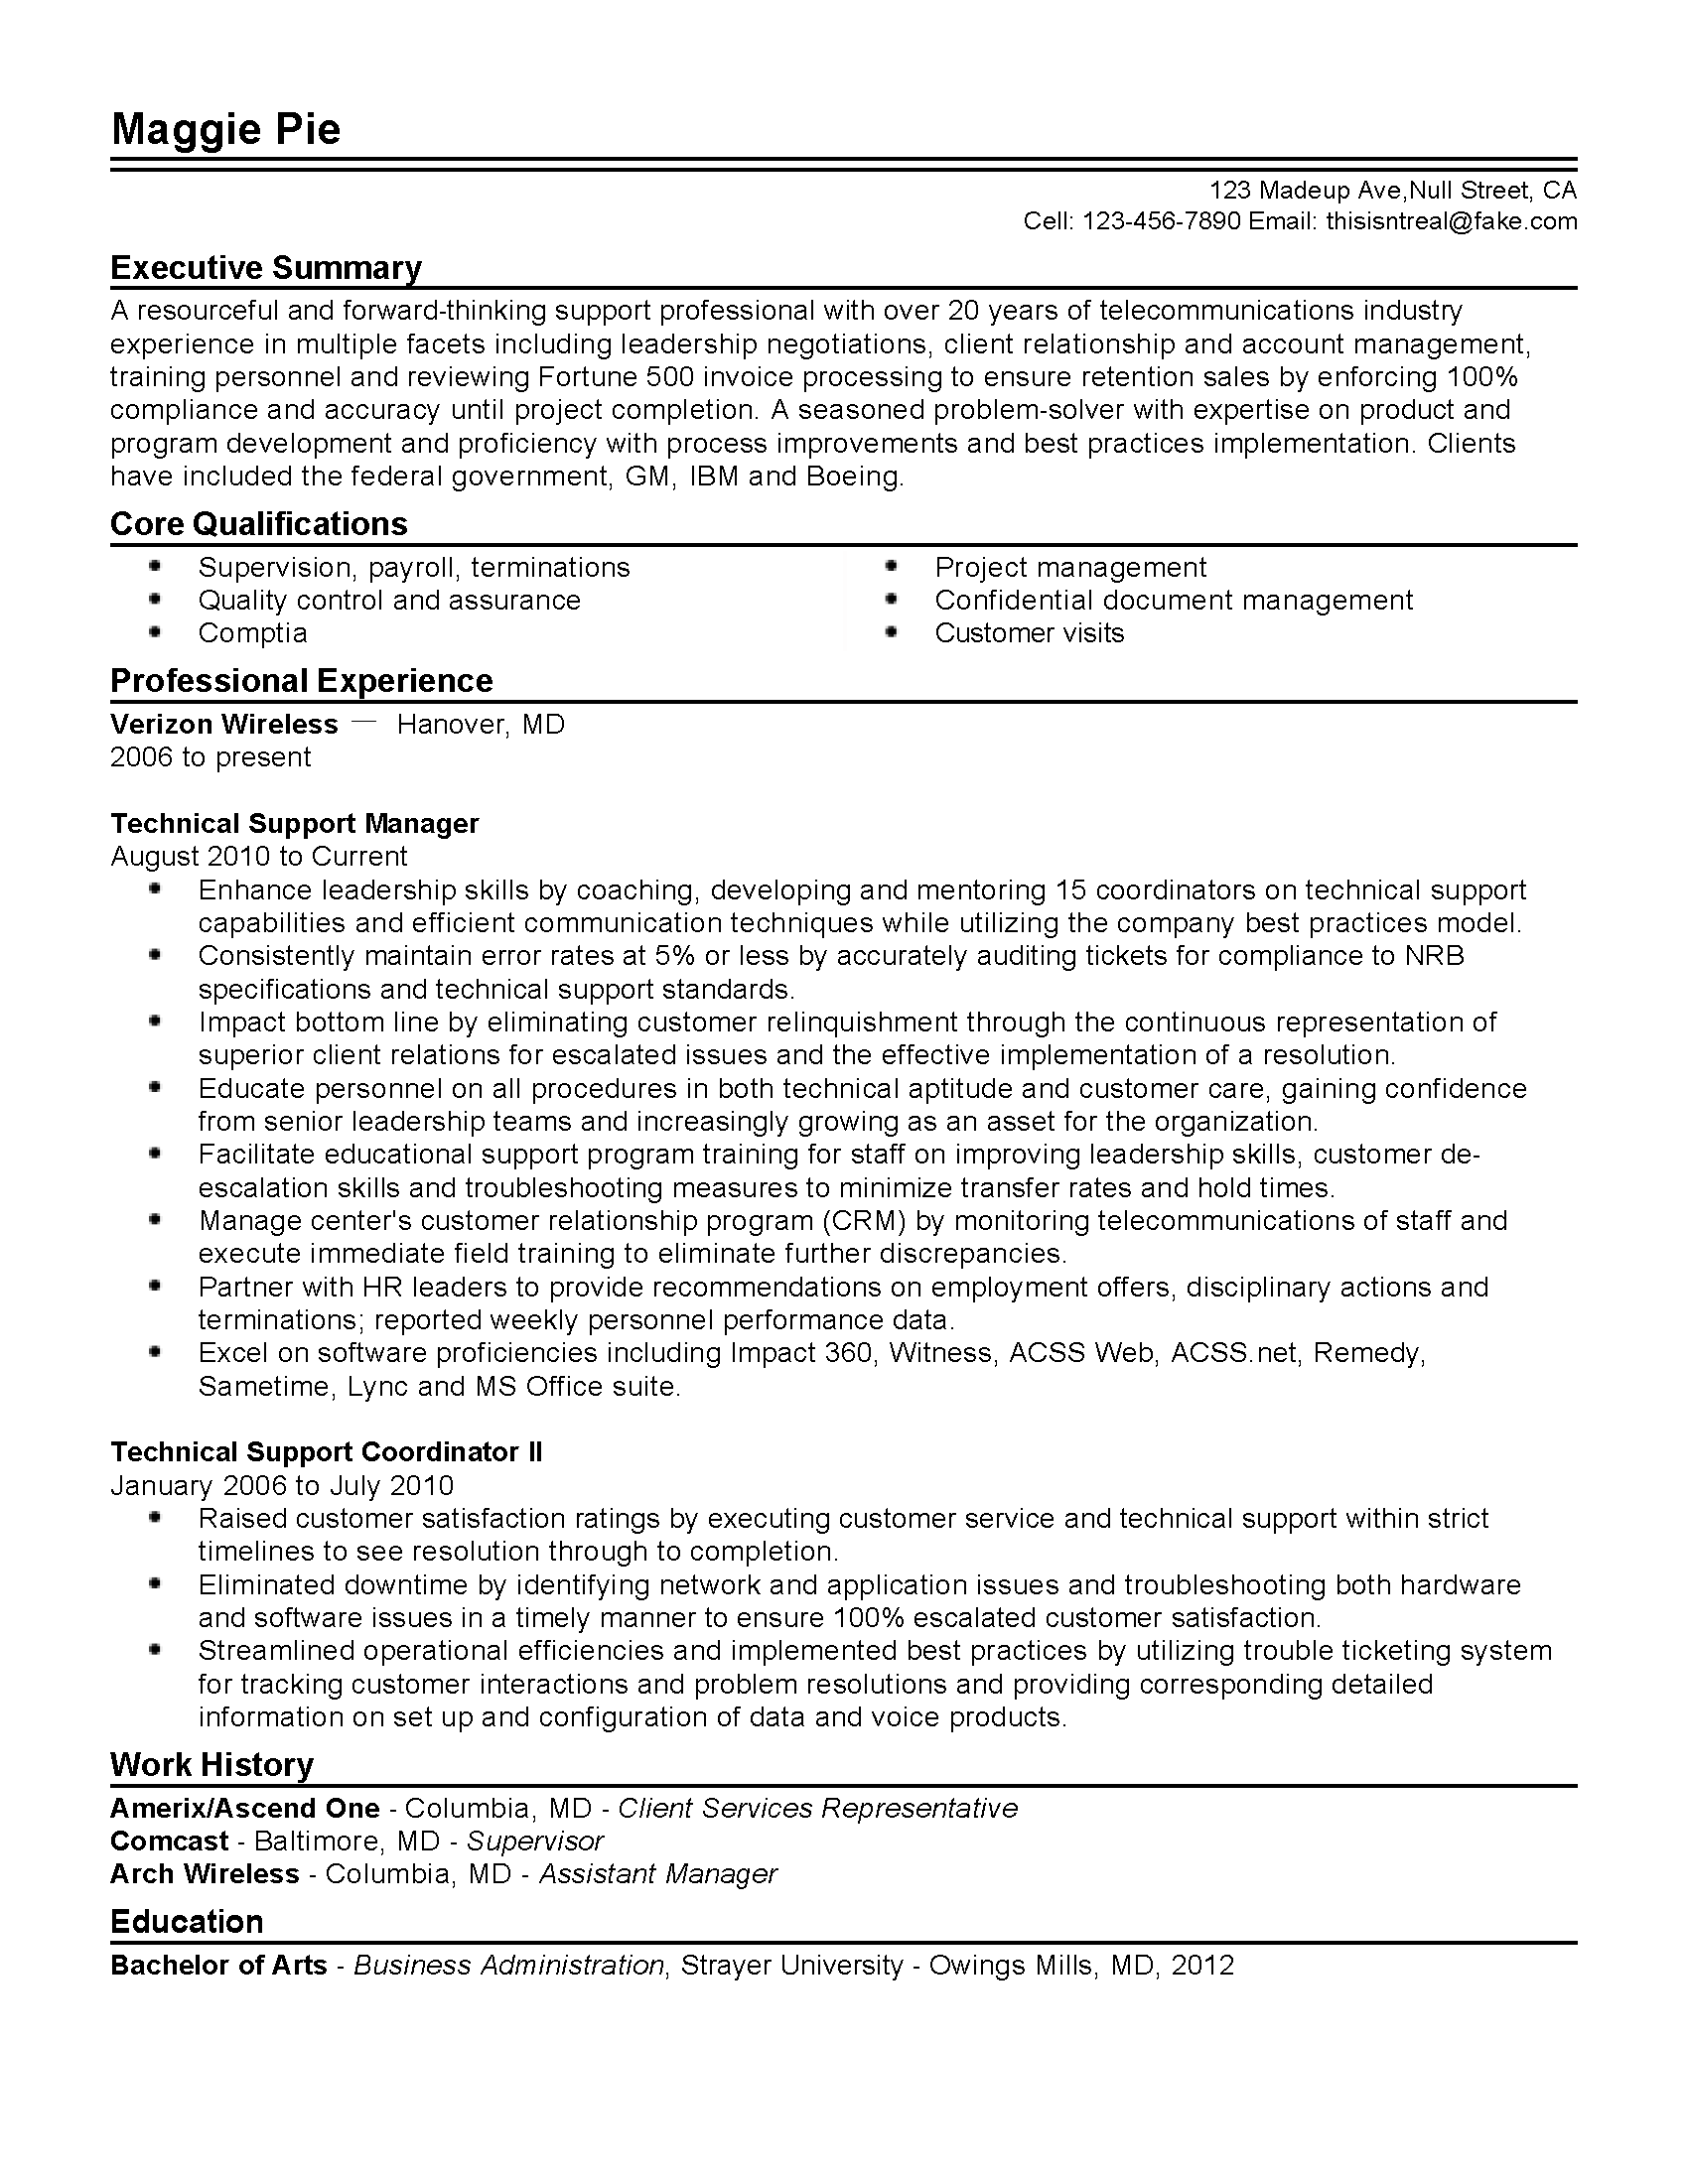 best resume format for telecom engineers cover letter for fresh engineers format and template finance manager